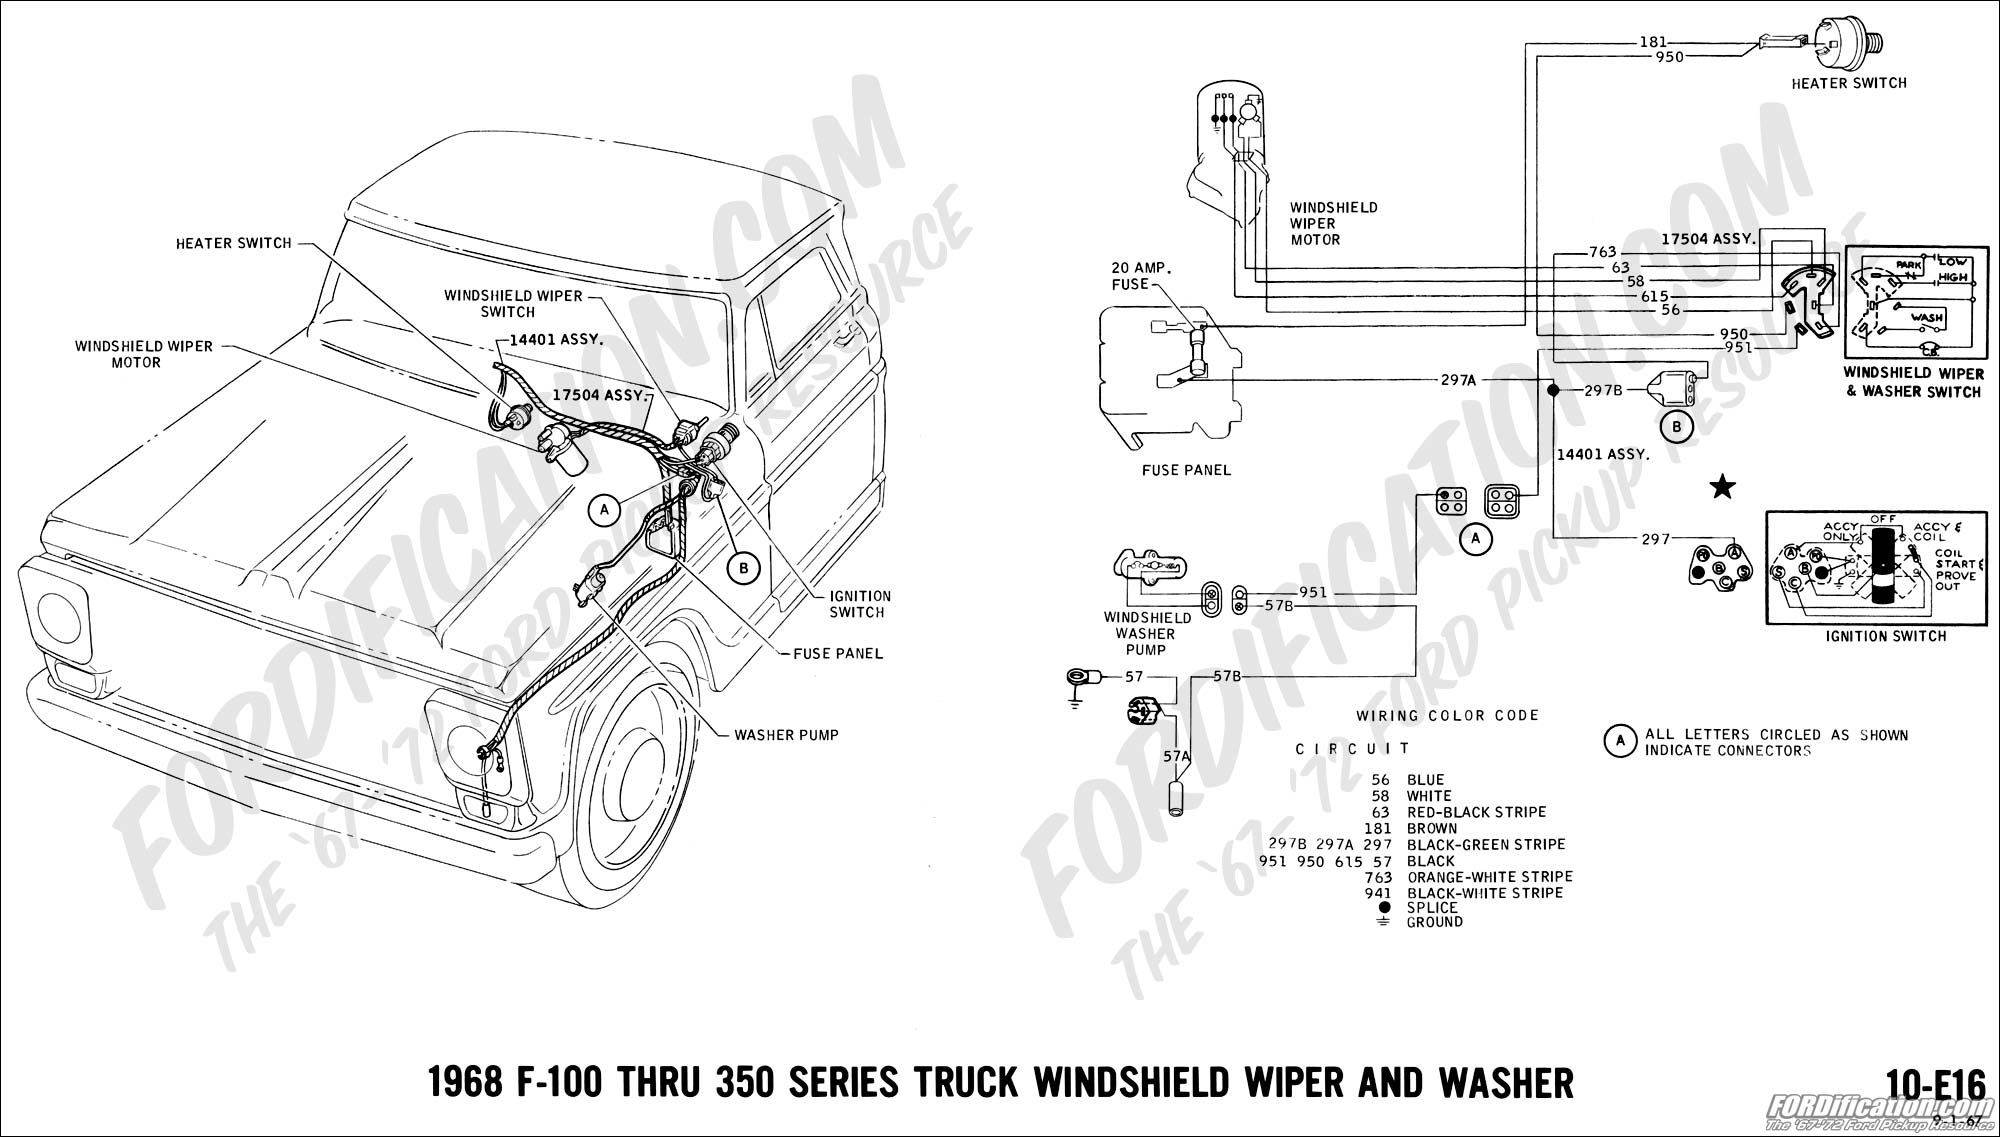 Ford truck technical drawings and schematics section h wiring on 2013 f150 wiring diagram Mazda Cx 9 Wiring Diagram 2010 F150 Wiring Diagram